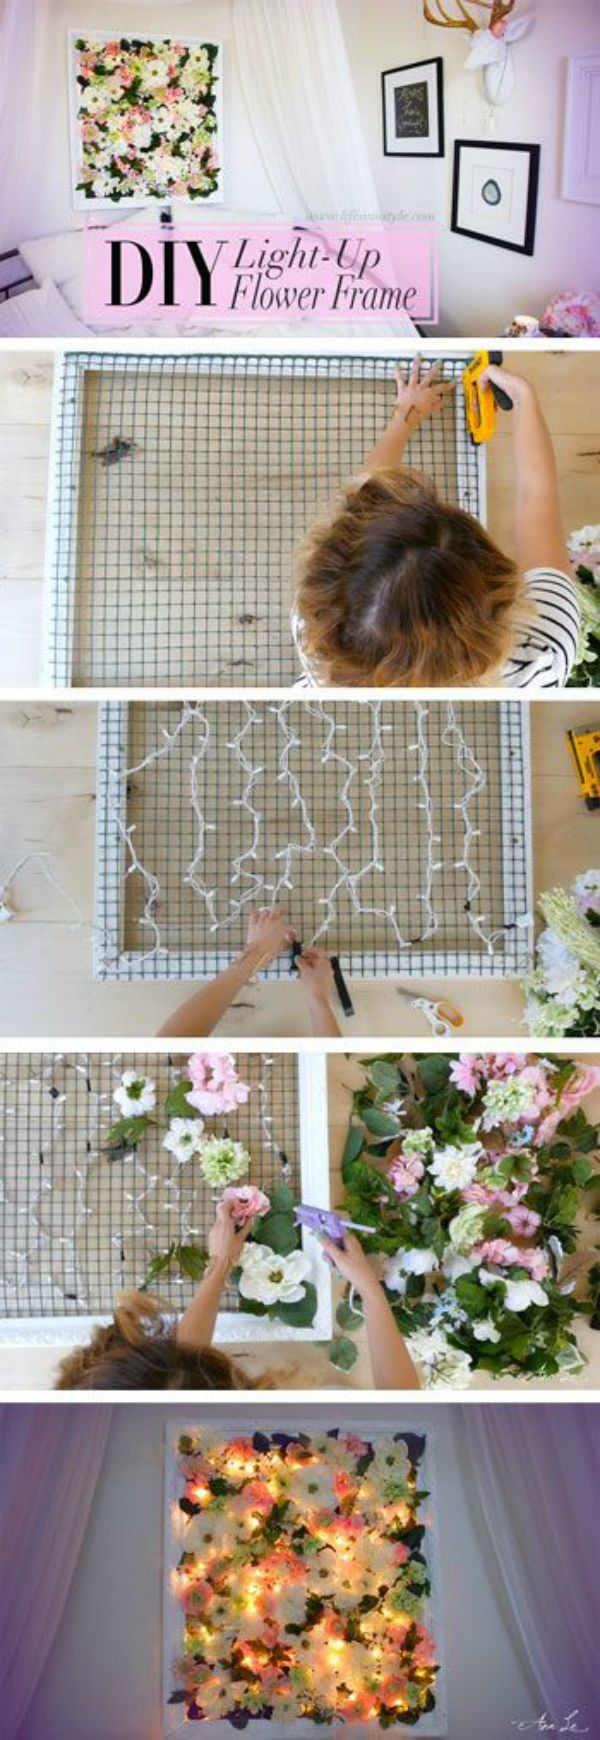 Cheap Bedroom Decor Ideas: DIY Light-Up Flower Frame